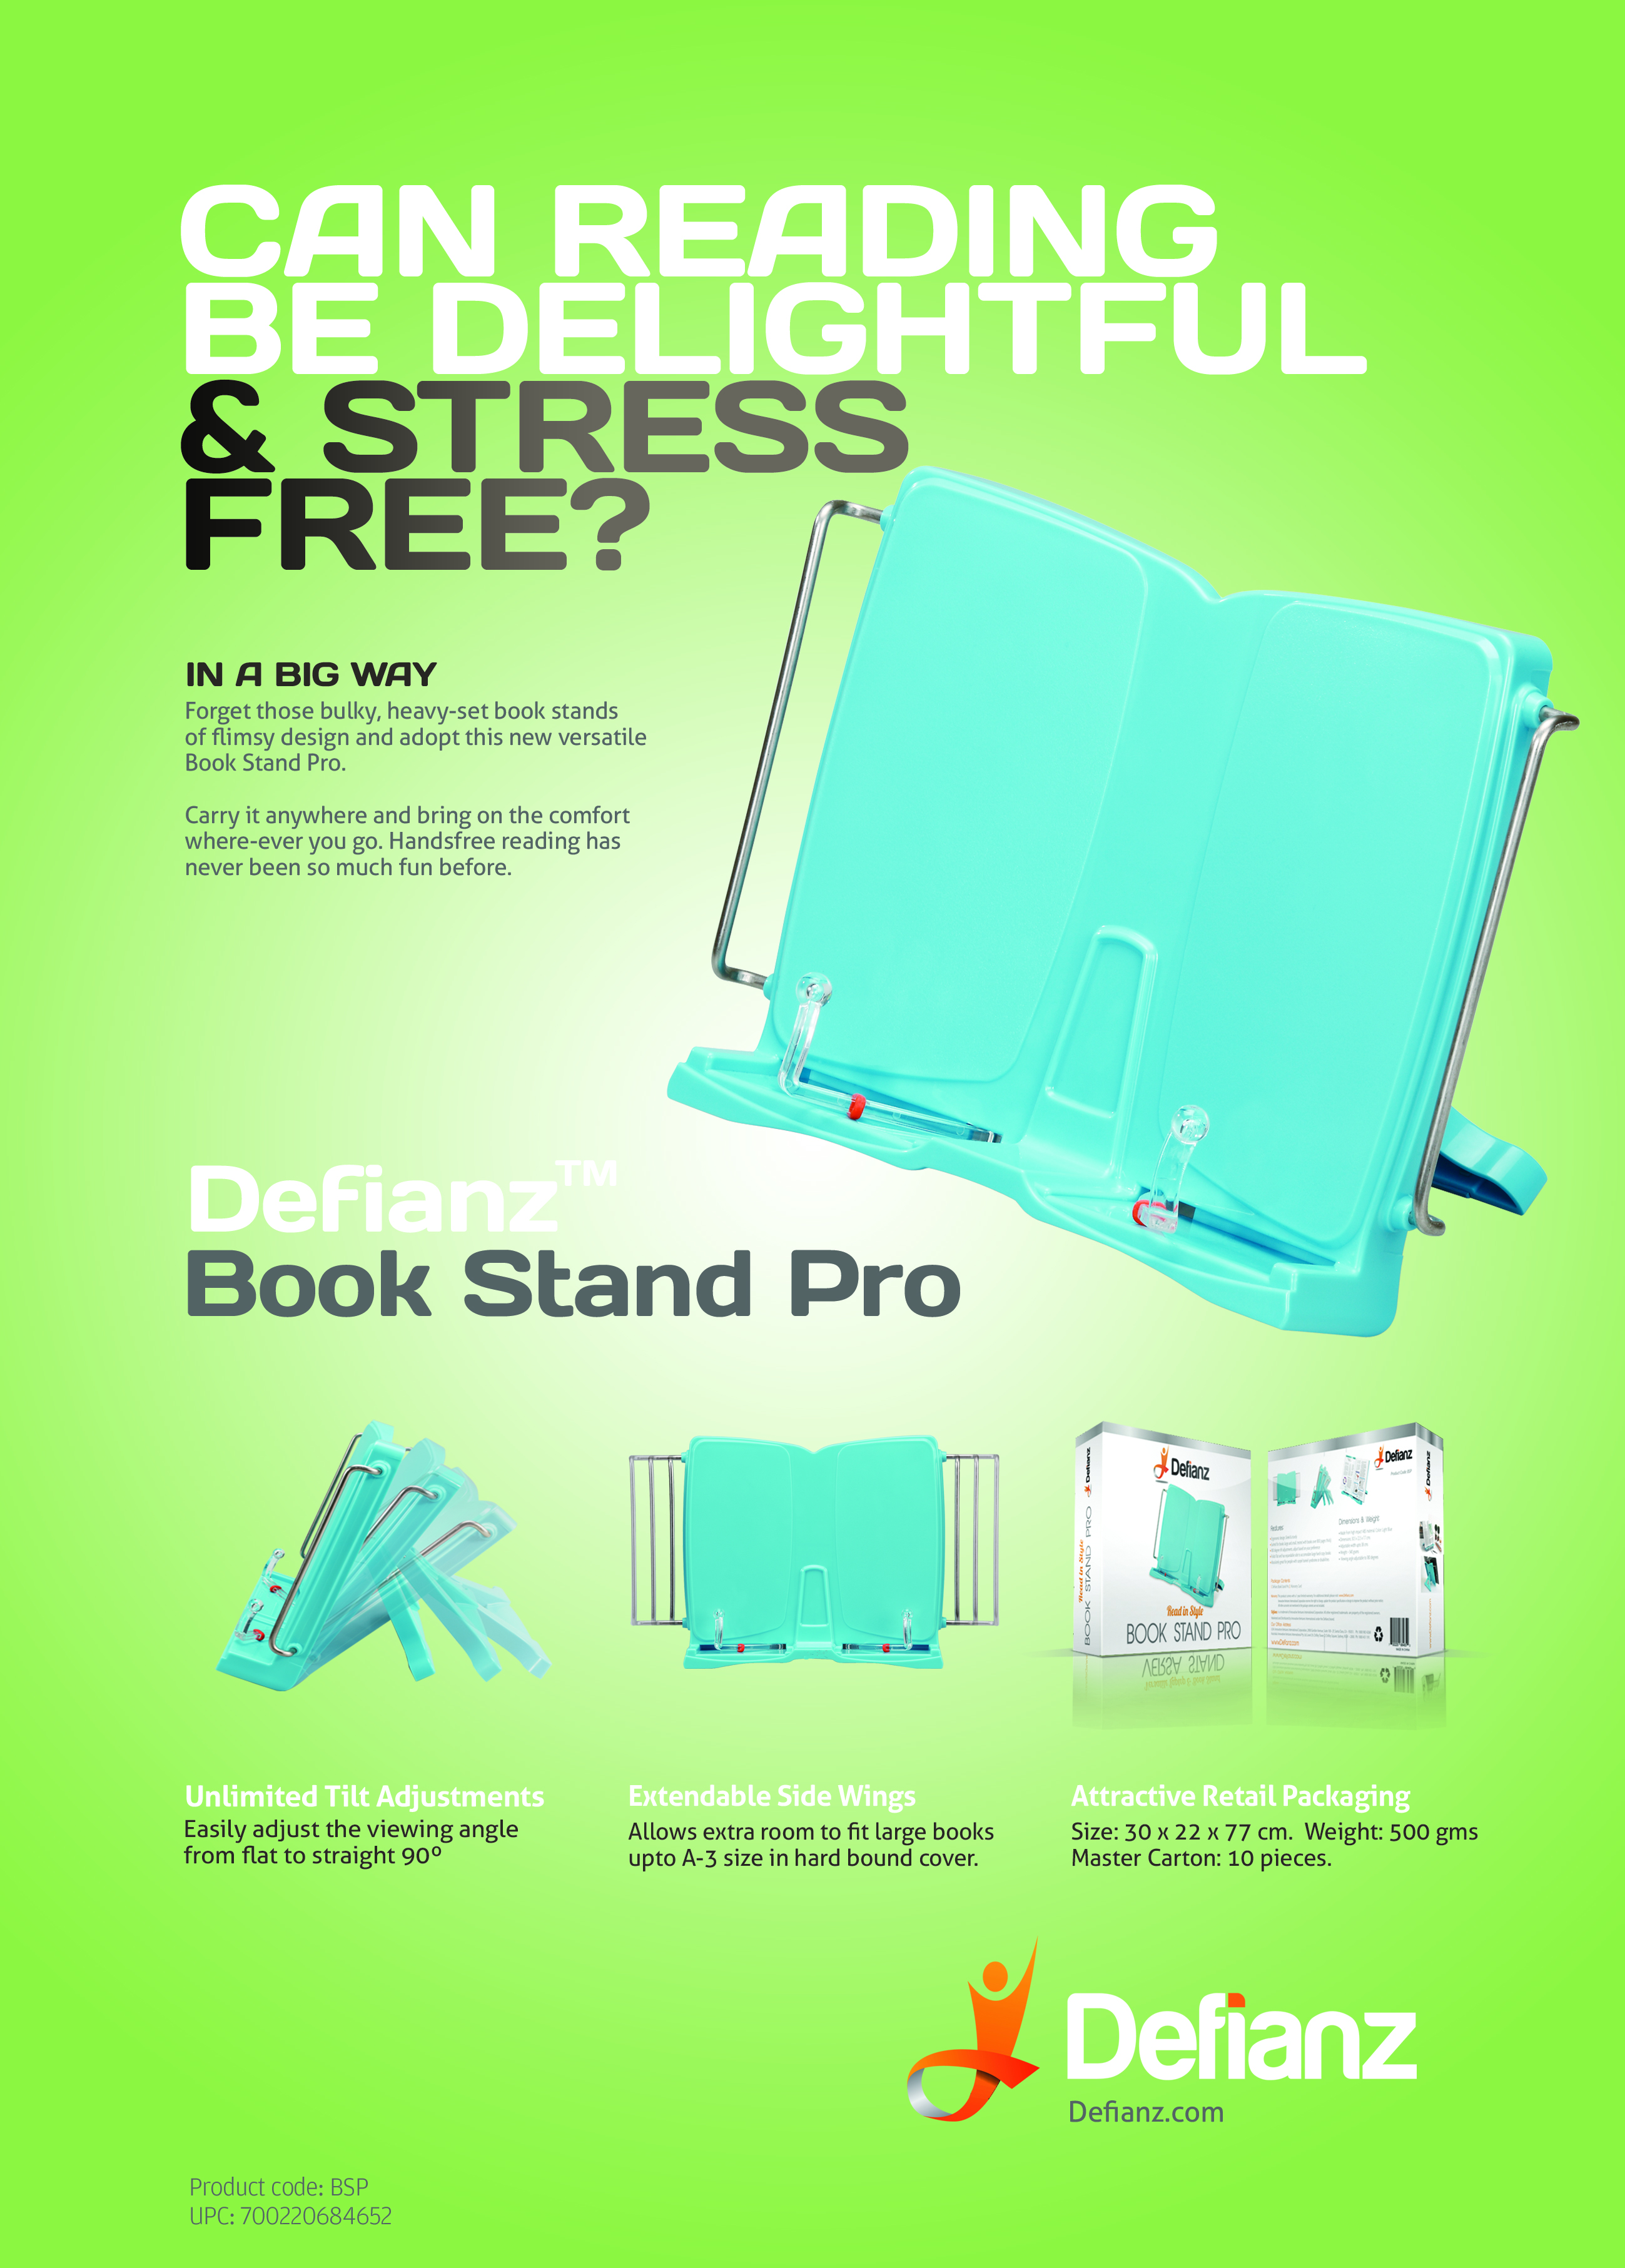 defianz book stand pro make reading delightful and fun with this